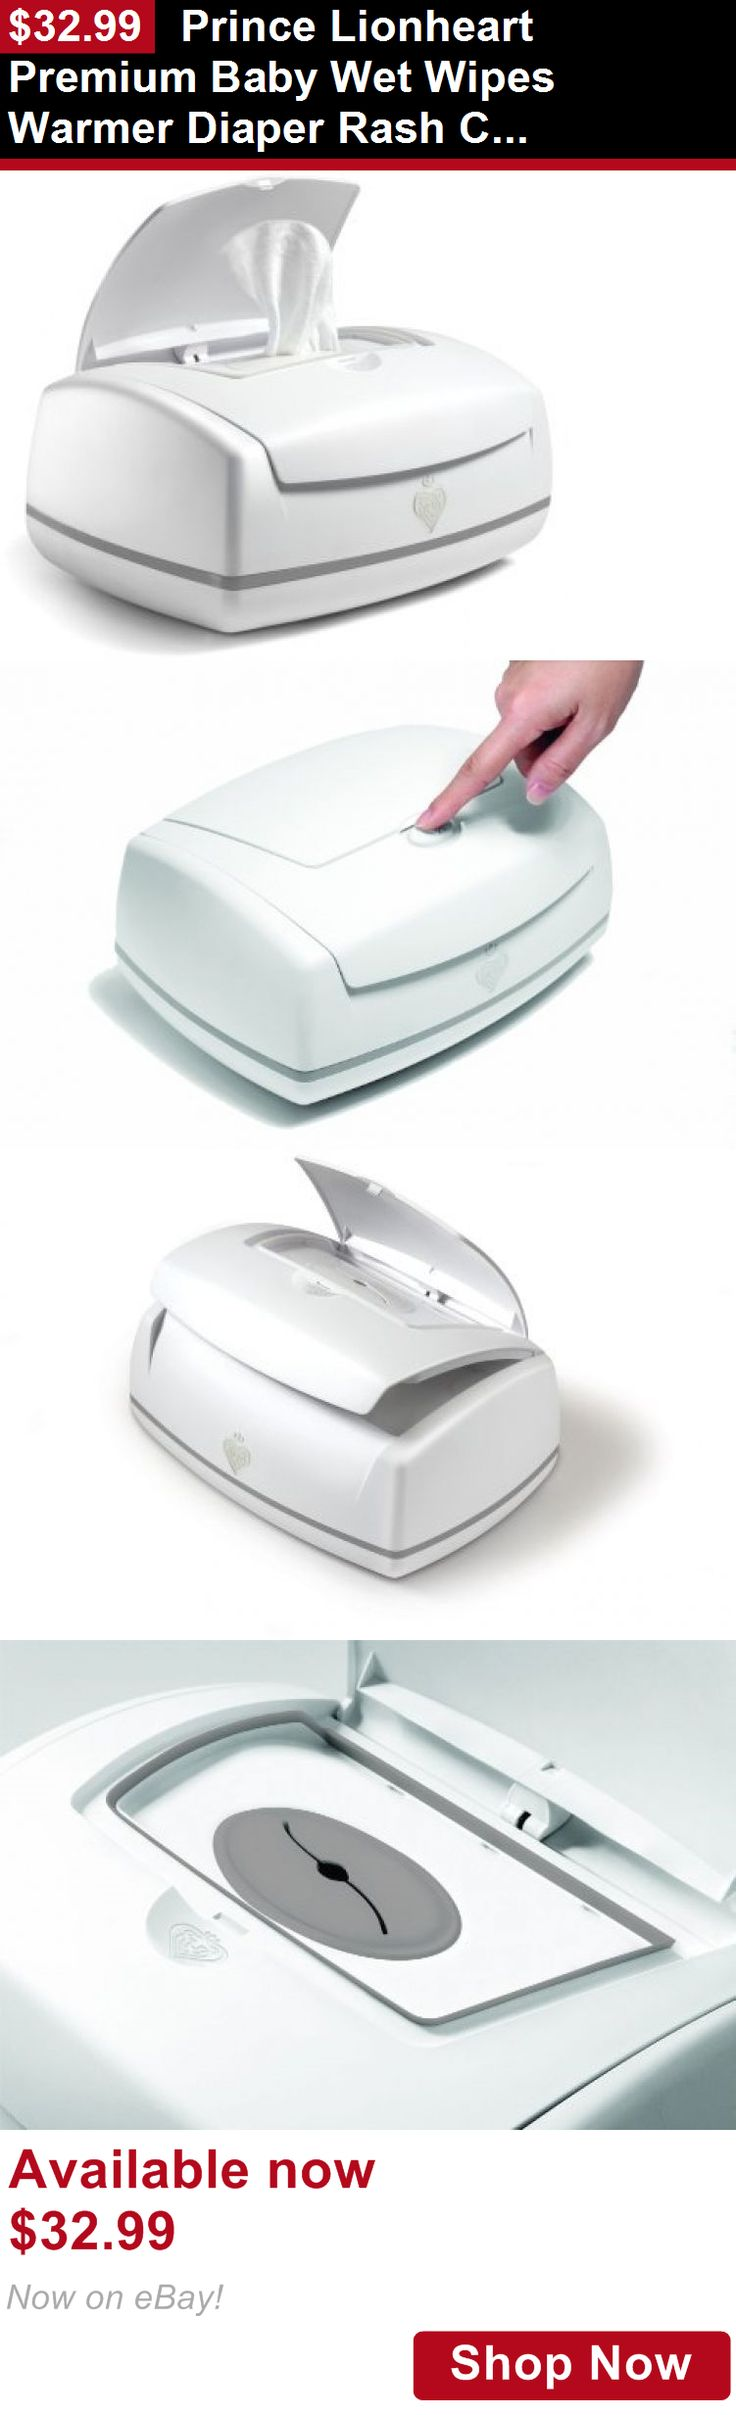 Baby Wipe Warmers: Prince Lionheart Premium Baby Wet Wipes Warmer Diaper Rash Changing Table BUY IT NOW ONLY: $32.99